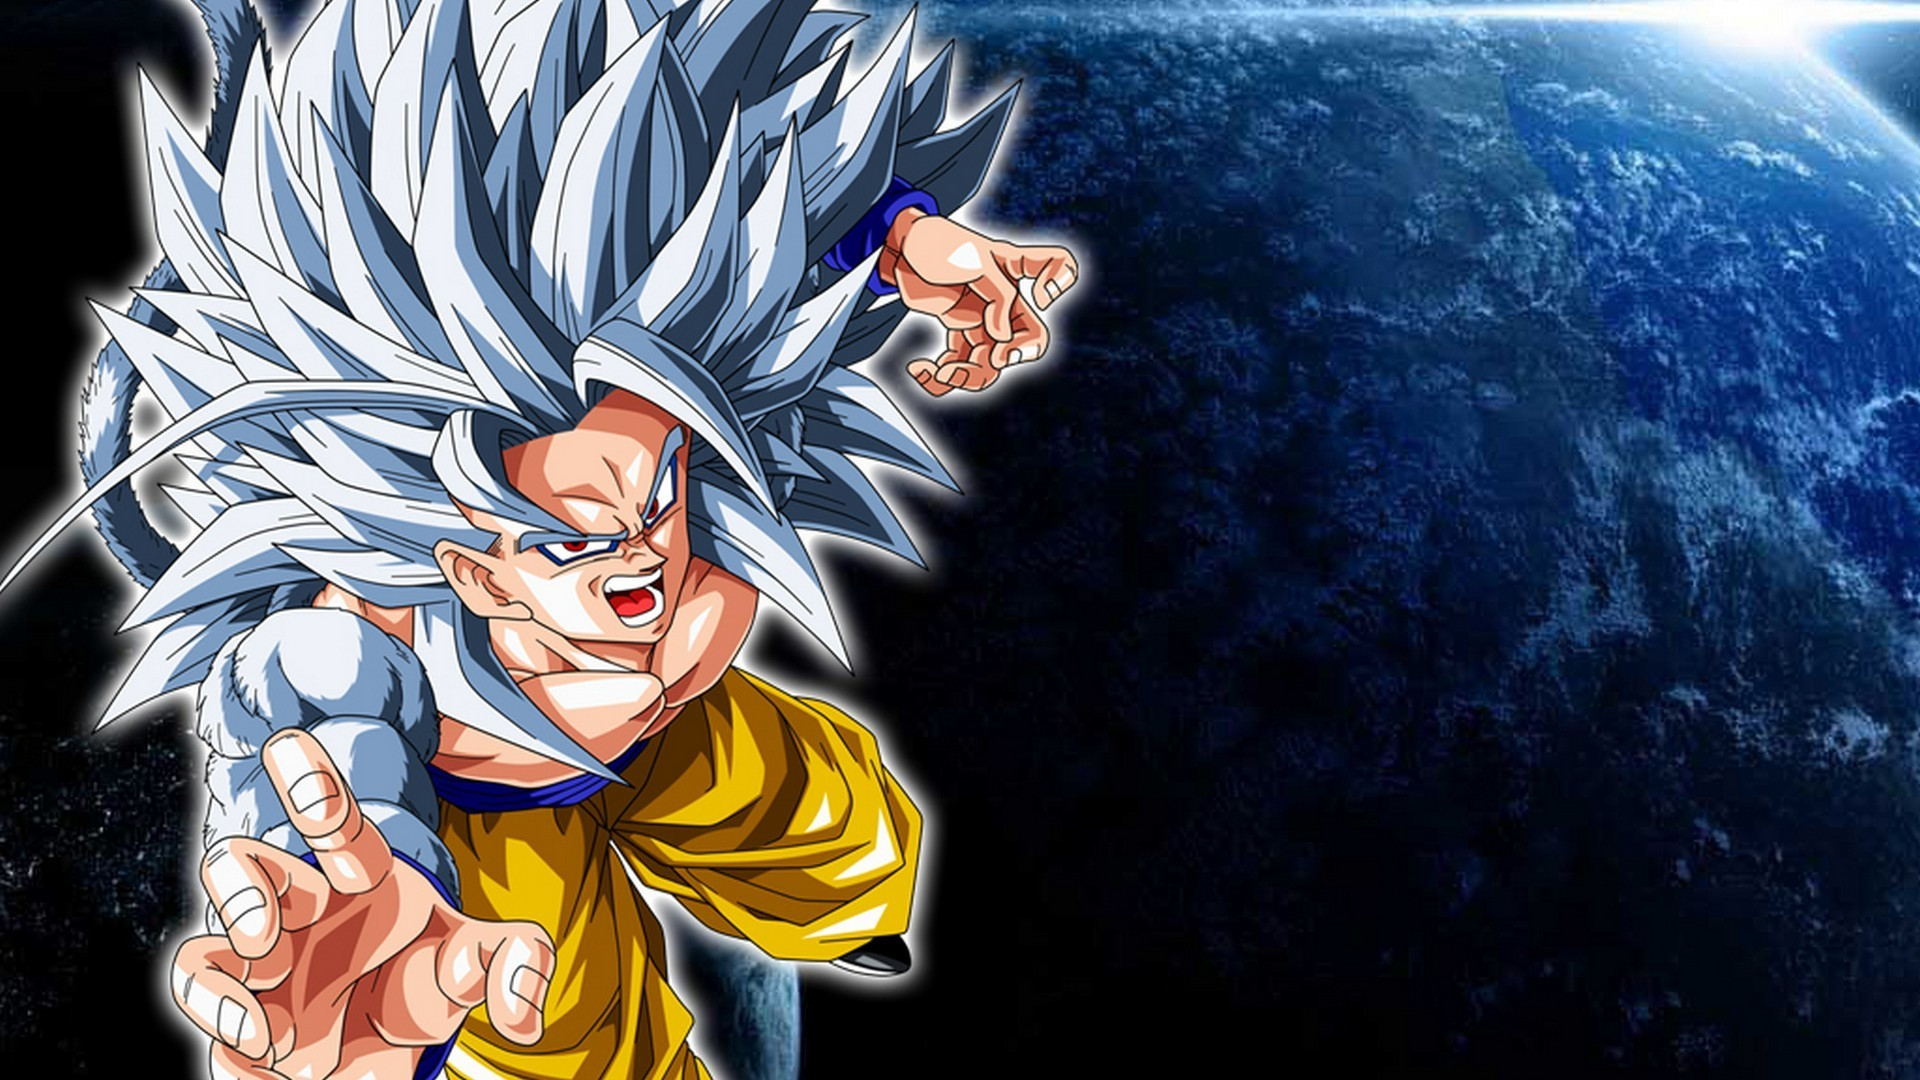 Goku Wallpaper Hd Posted By Sarah Anderson